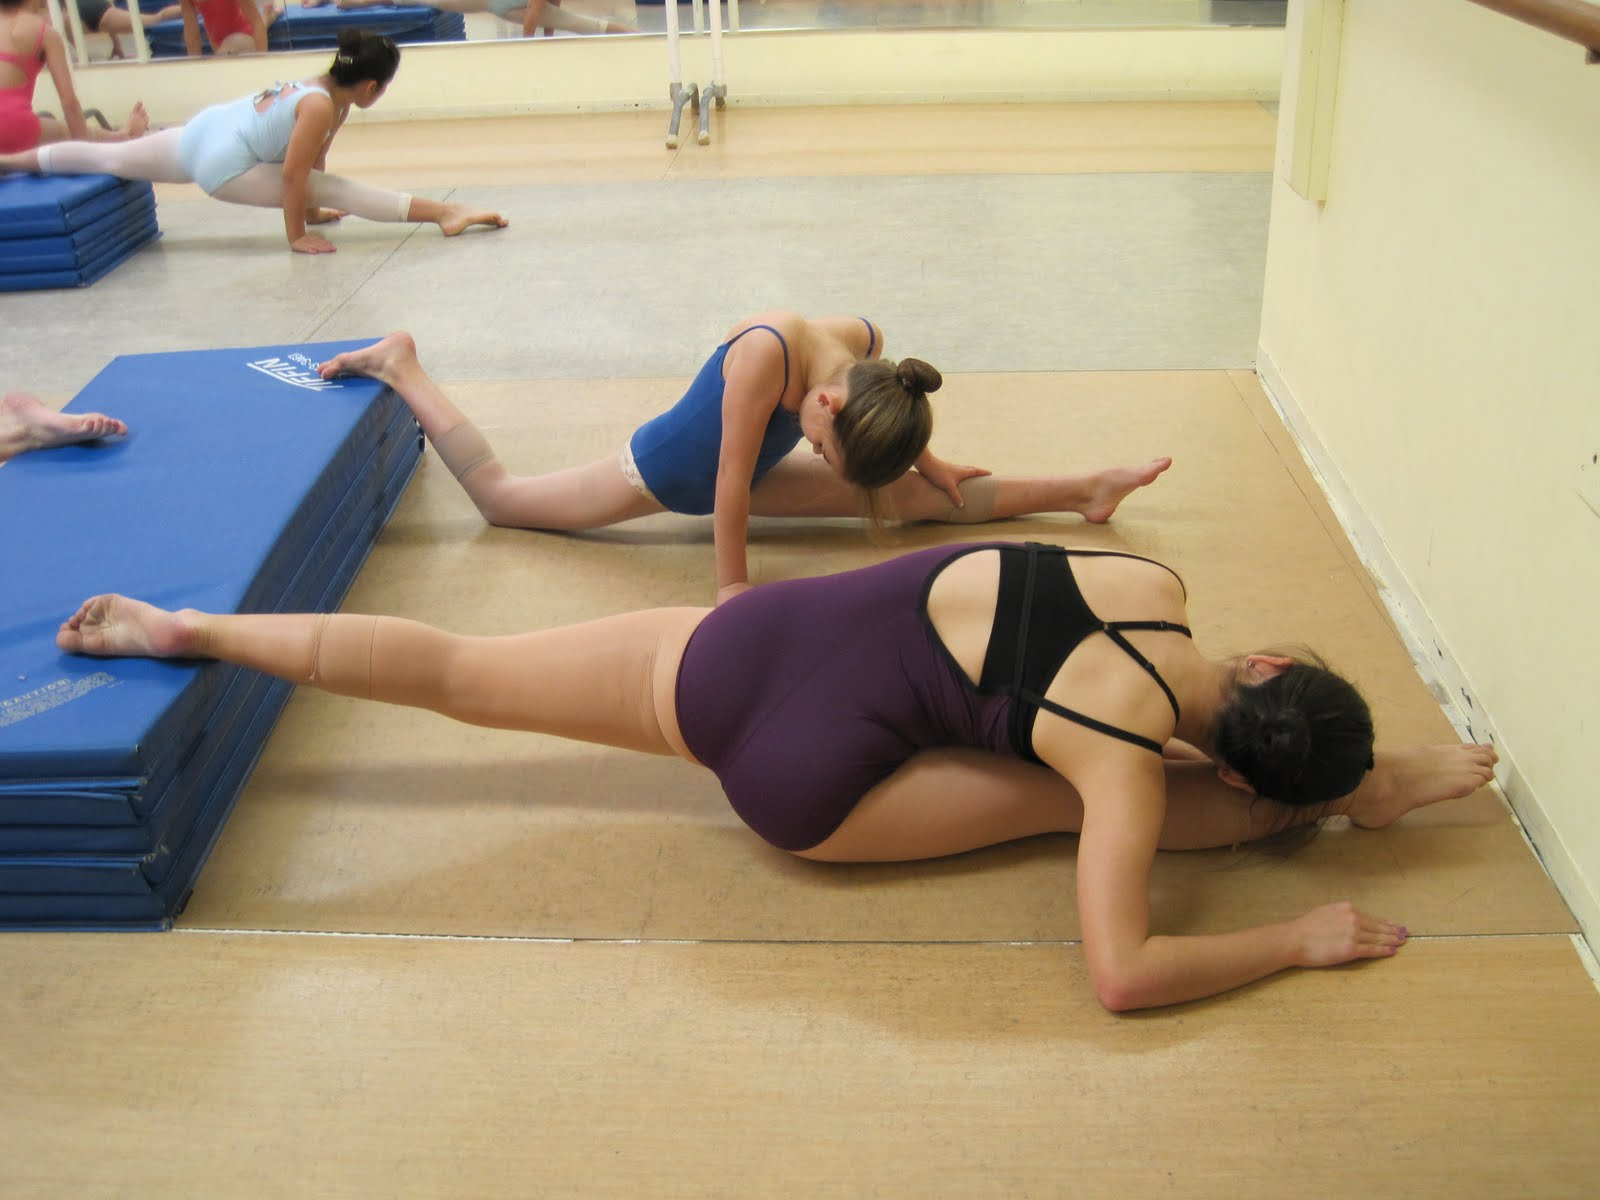 Having a successful dance career requires more than just being able to move